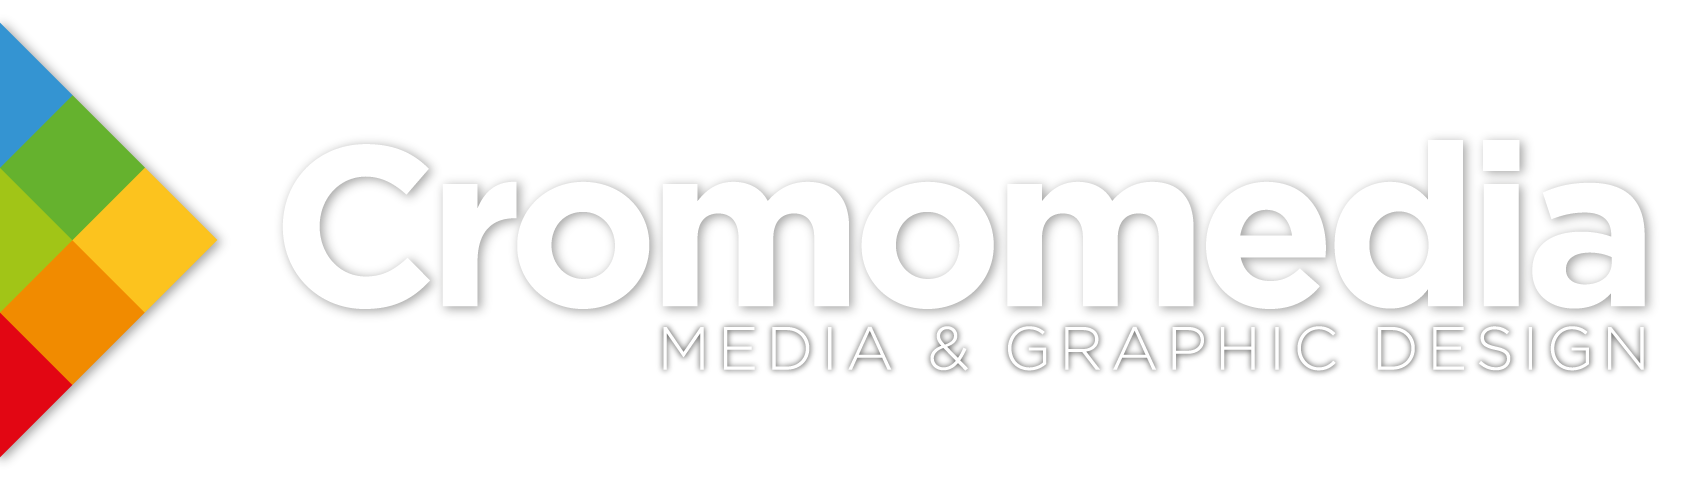 Cromomedia - Media & Graphic Design